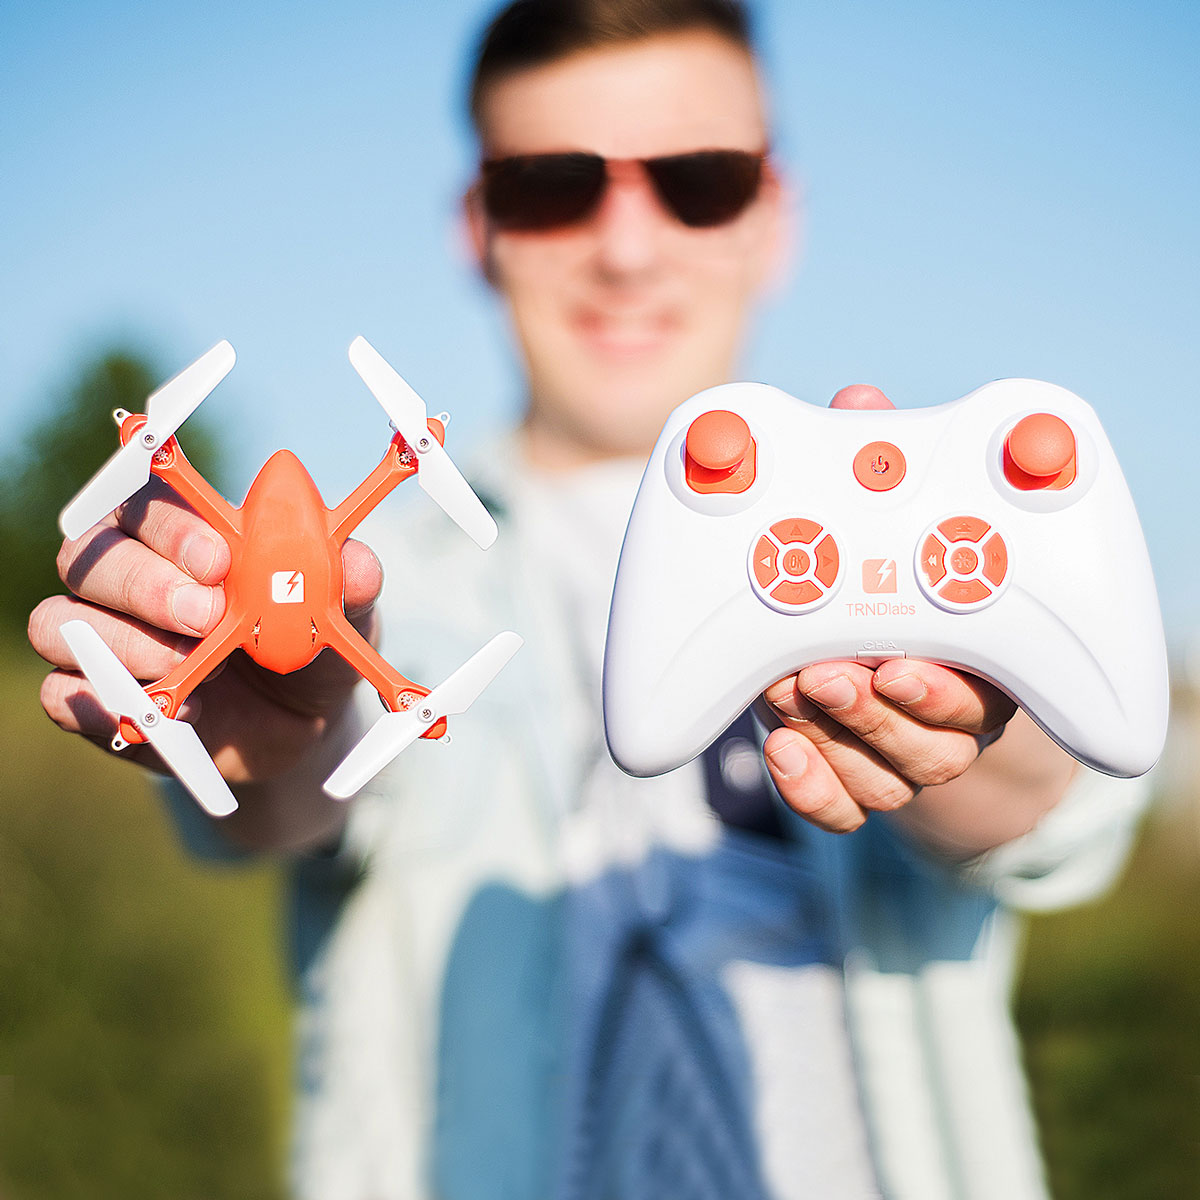 skeye-mini-drone-with-hd-camera-12